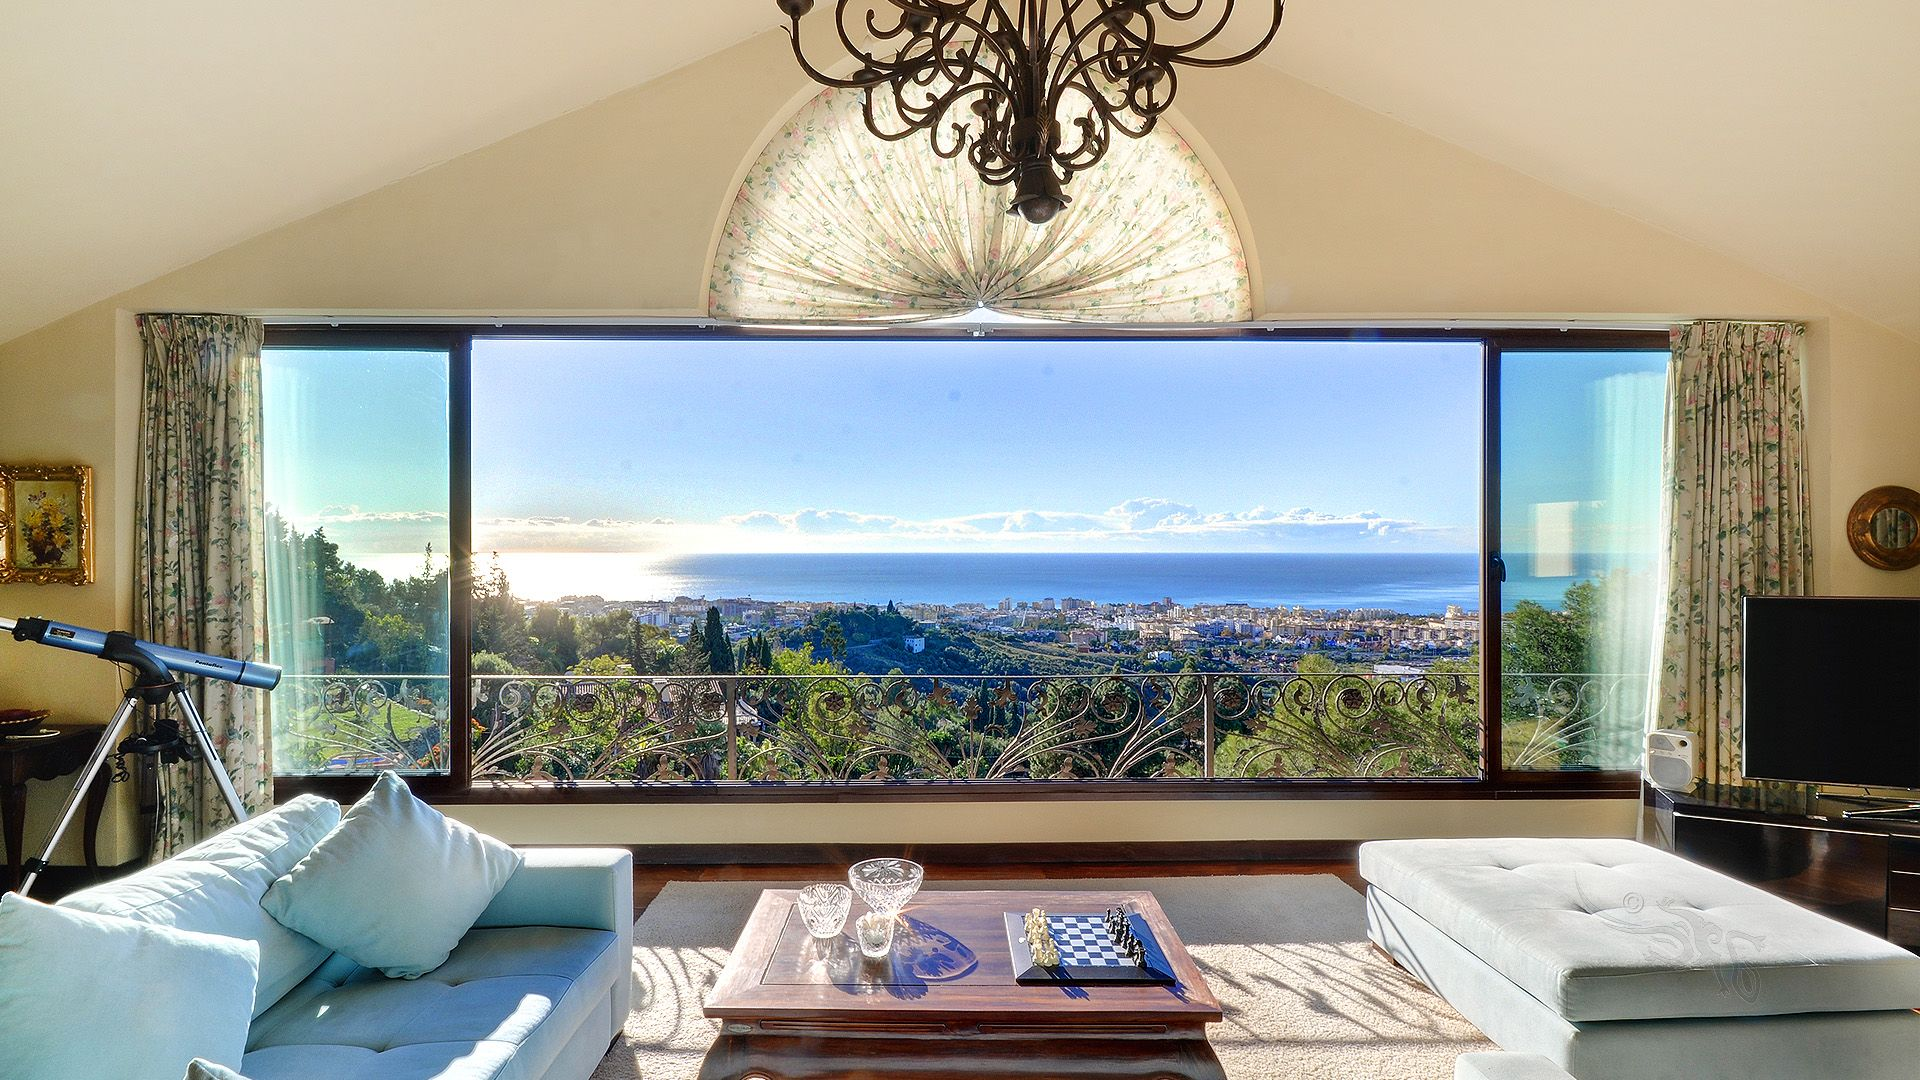 Luxury Family Villa With Spectacular Sea Views for Sale in Marbella